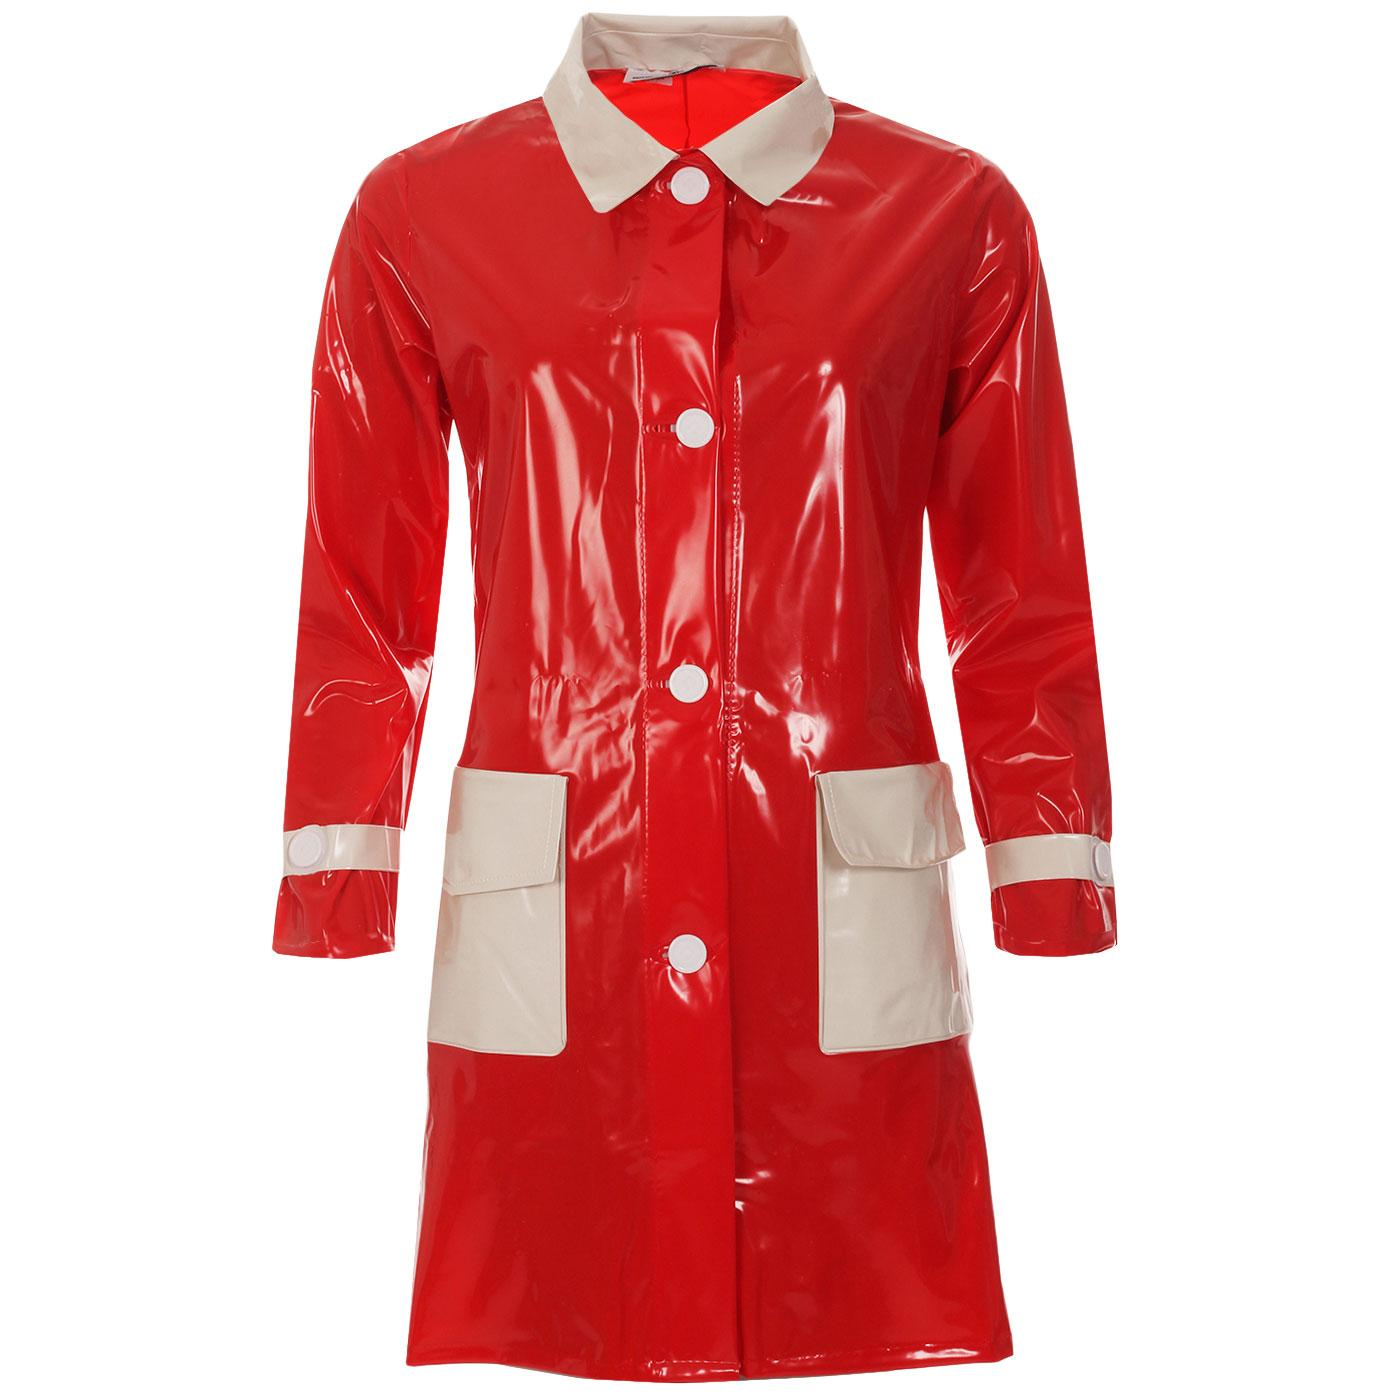 Madcap England Robin Women's 1960s Mod Plastic Raincoat in Red with White Pockets